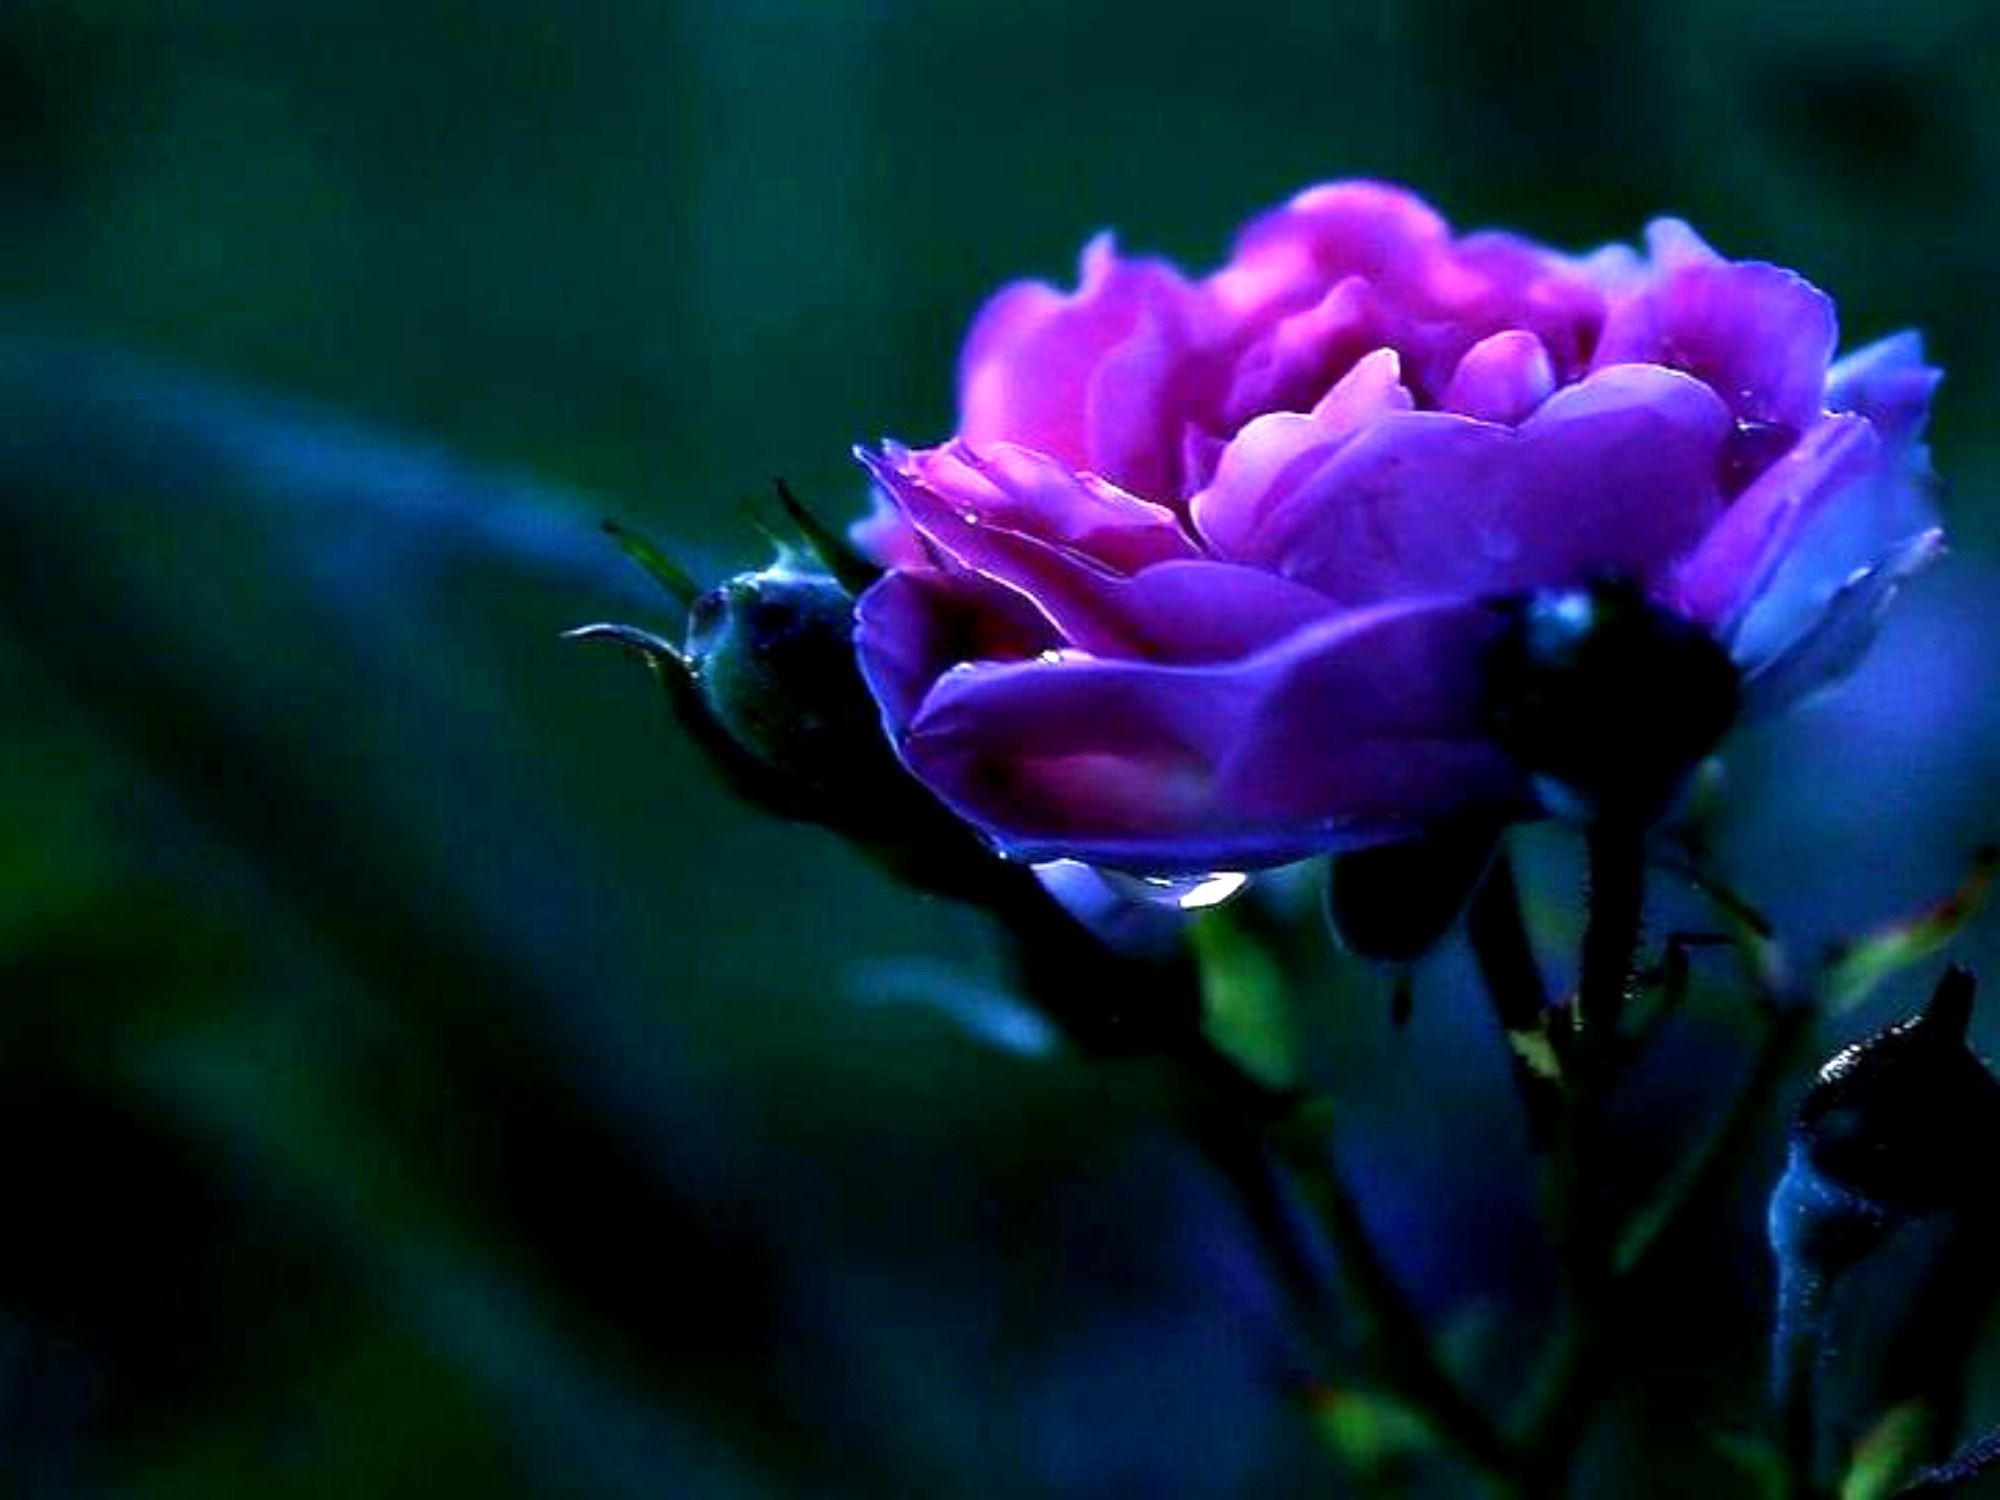 2000x1500 Violet Rose Wallpaper - Wallpapers Browse